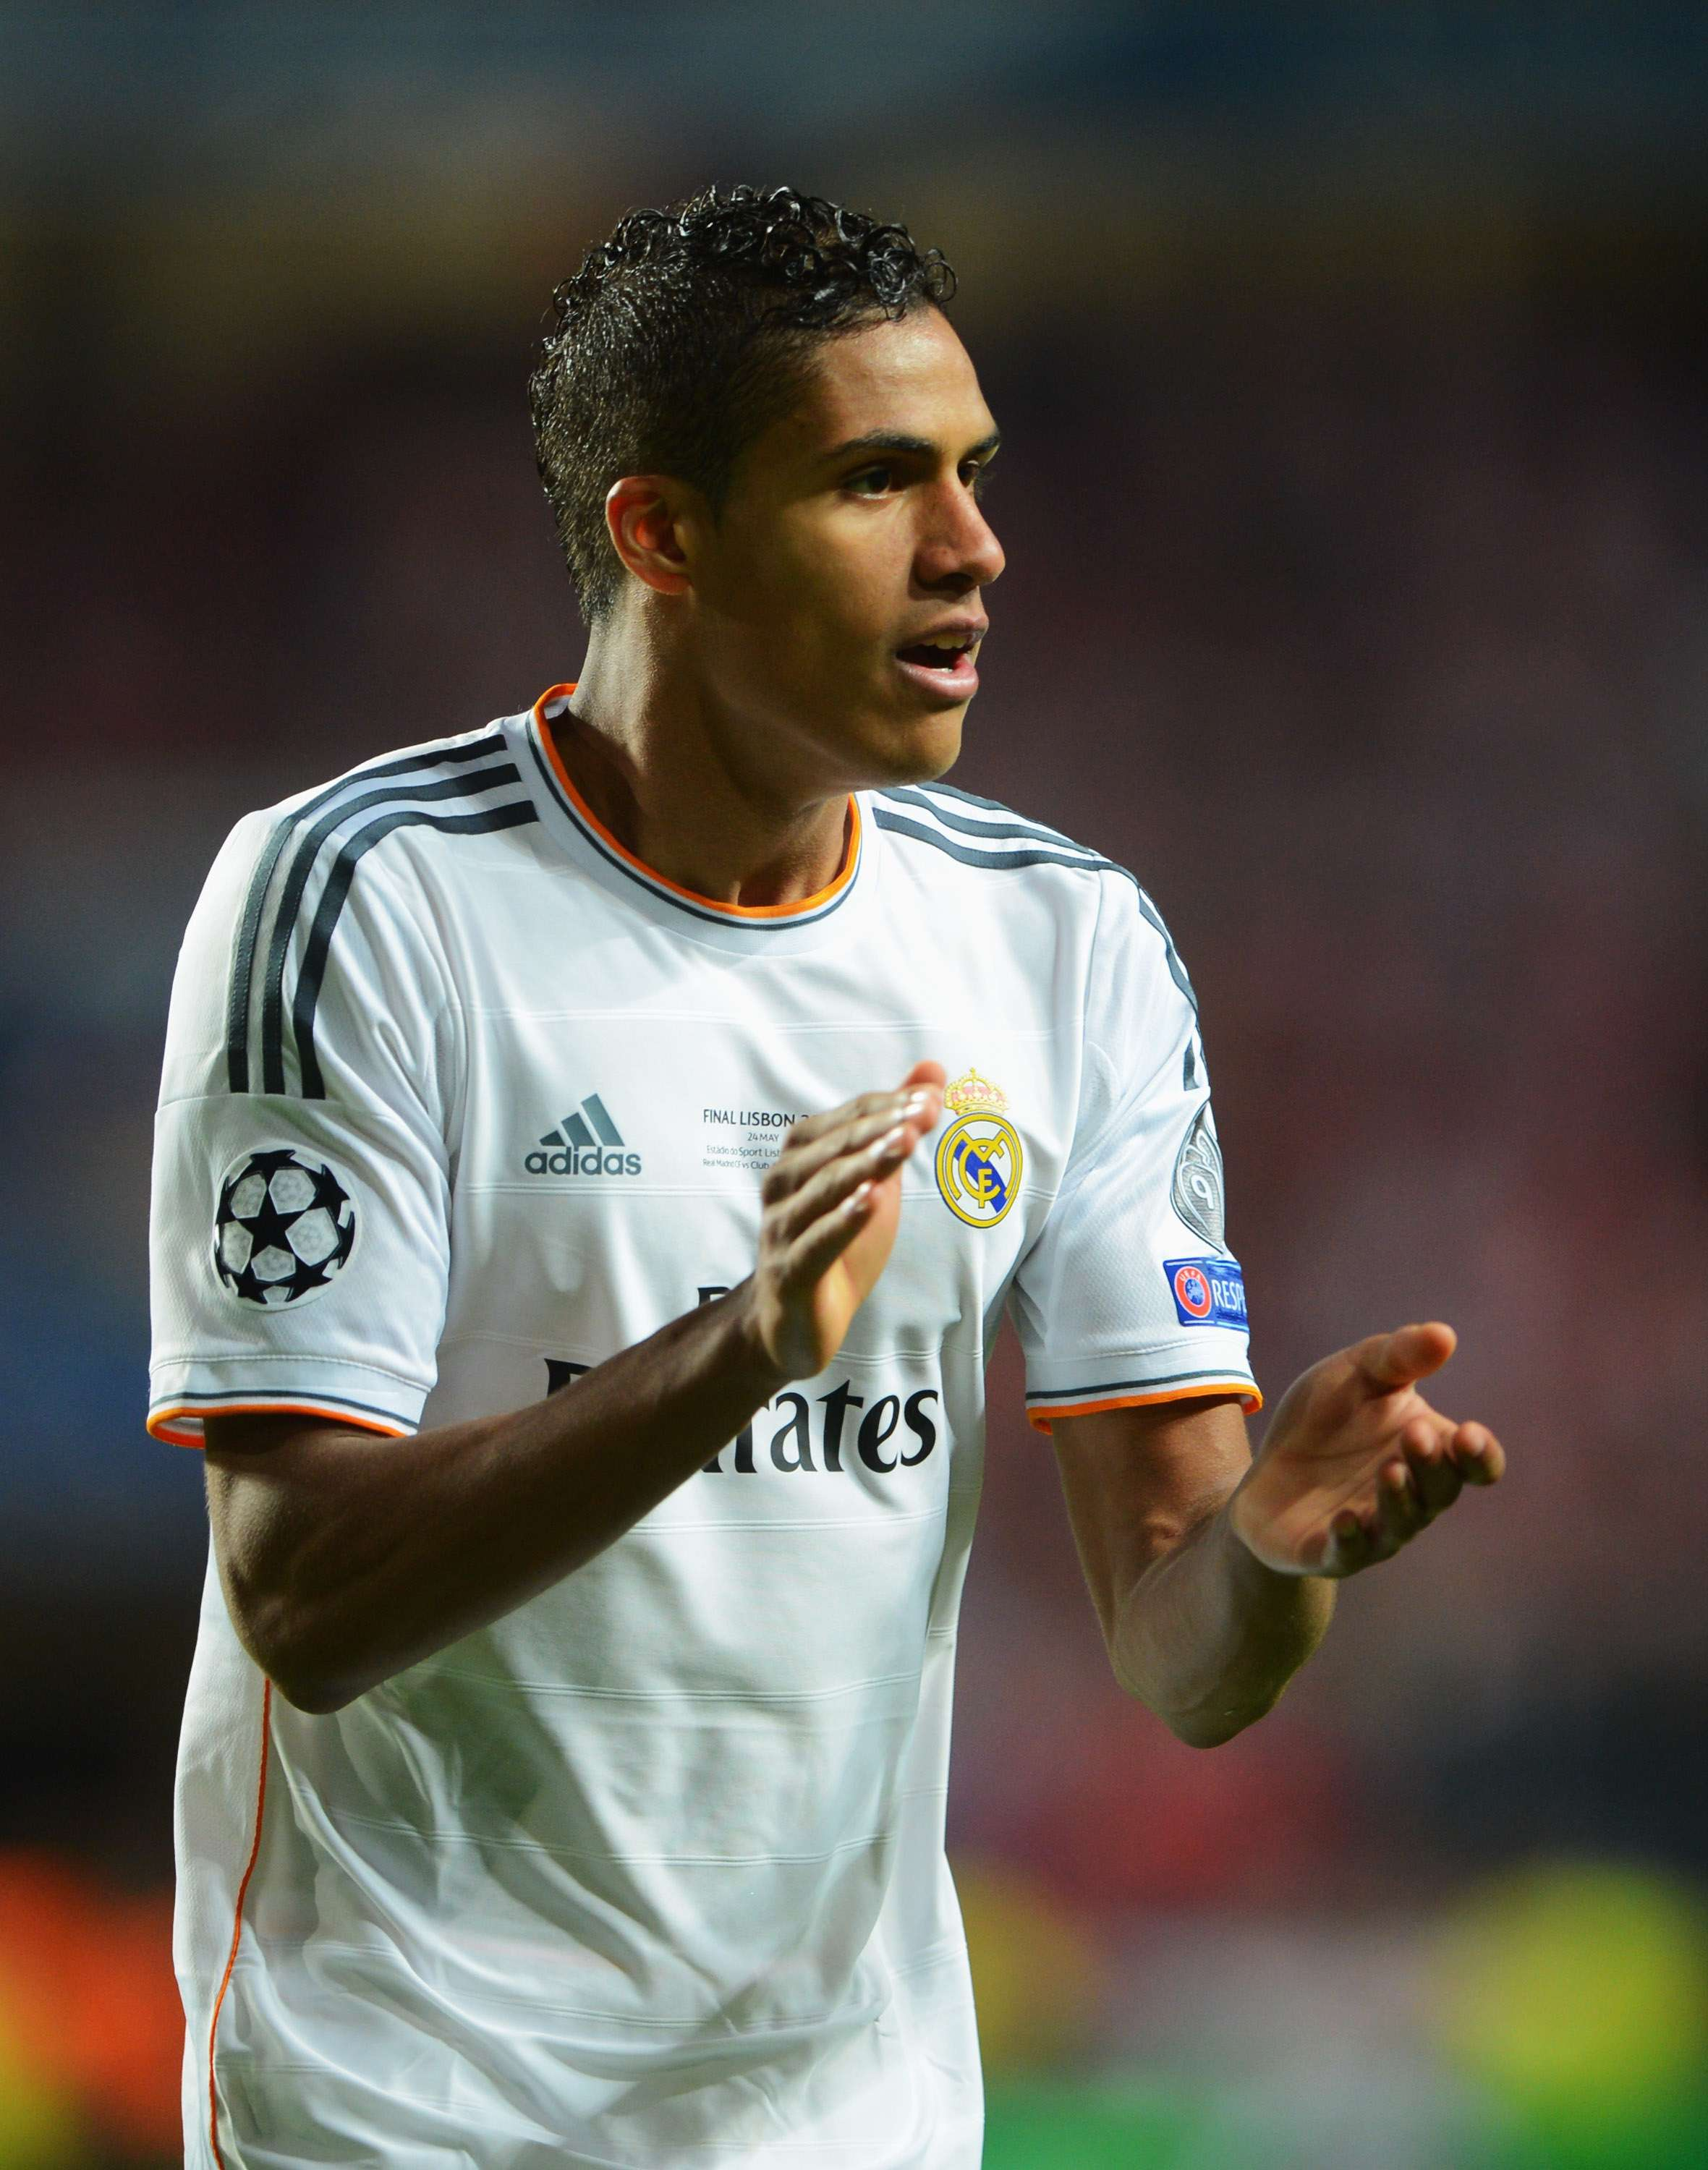 Varane podría emigrar a la Premier League. Foto: Getty Images